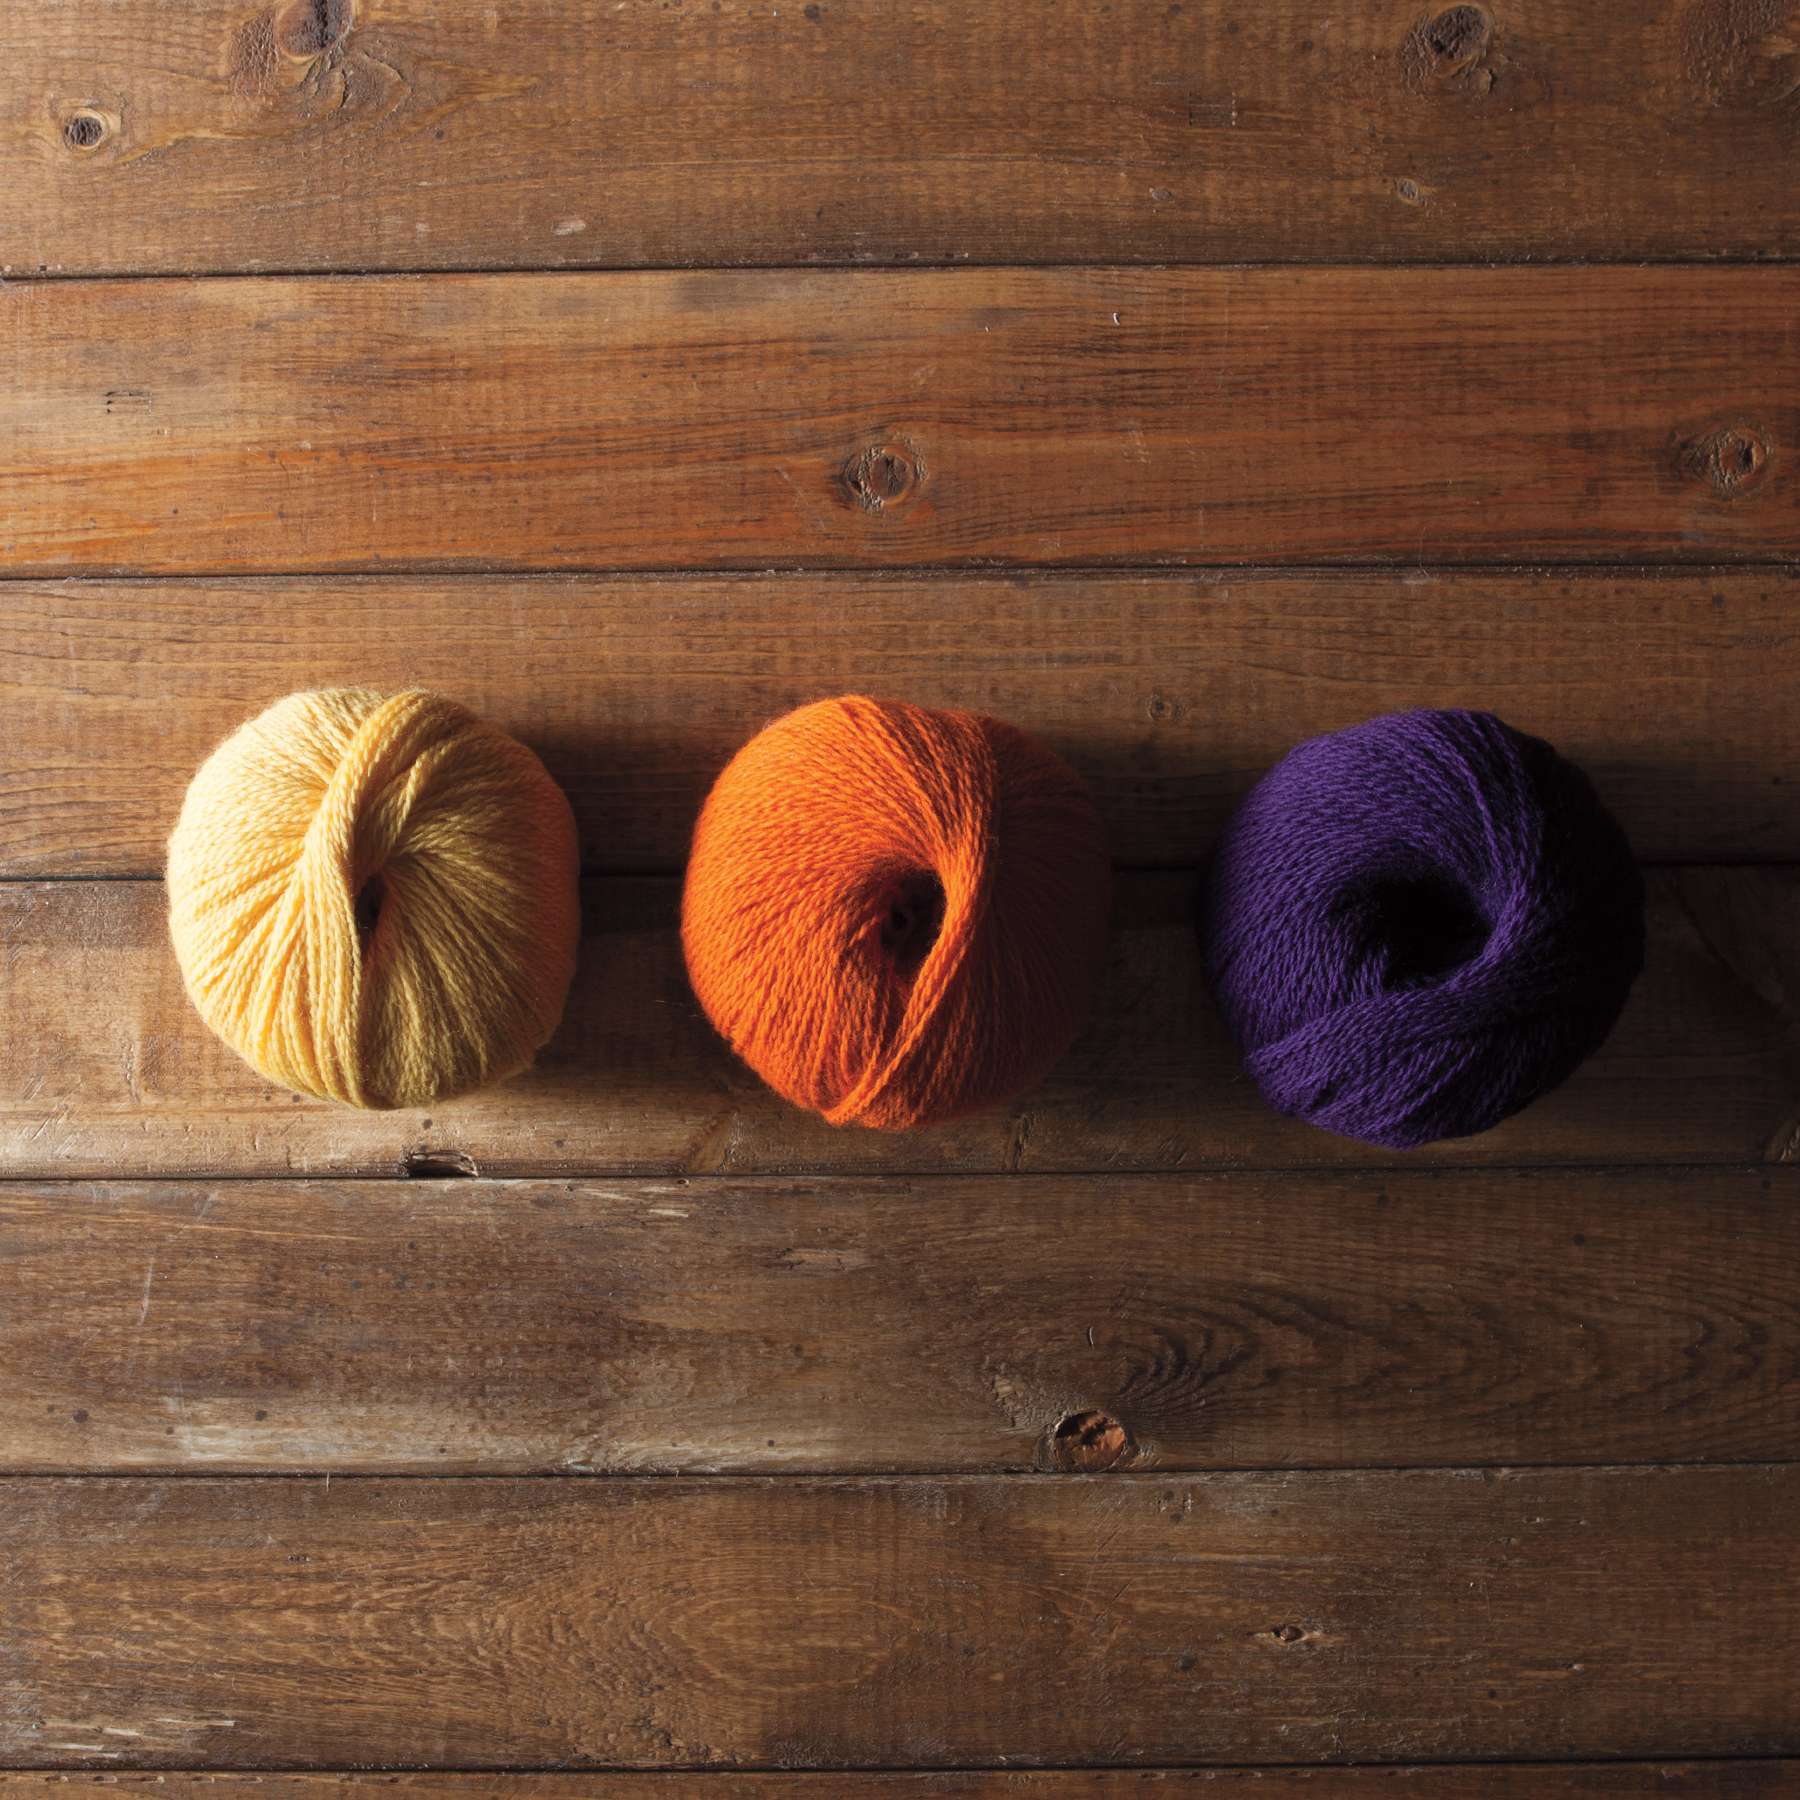 knitting color theory 2